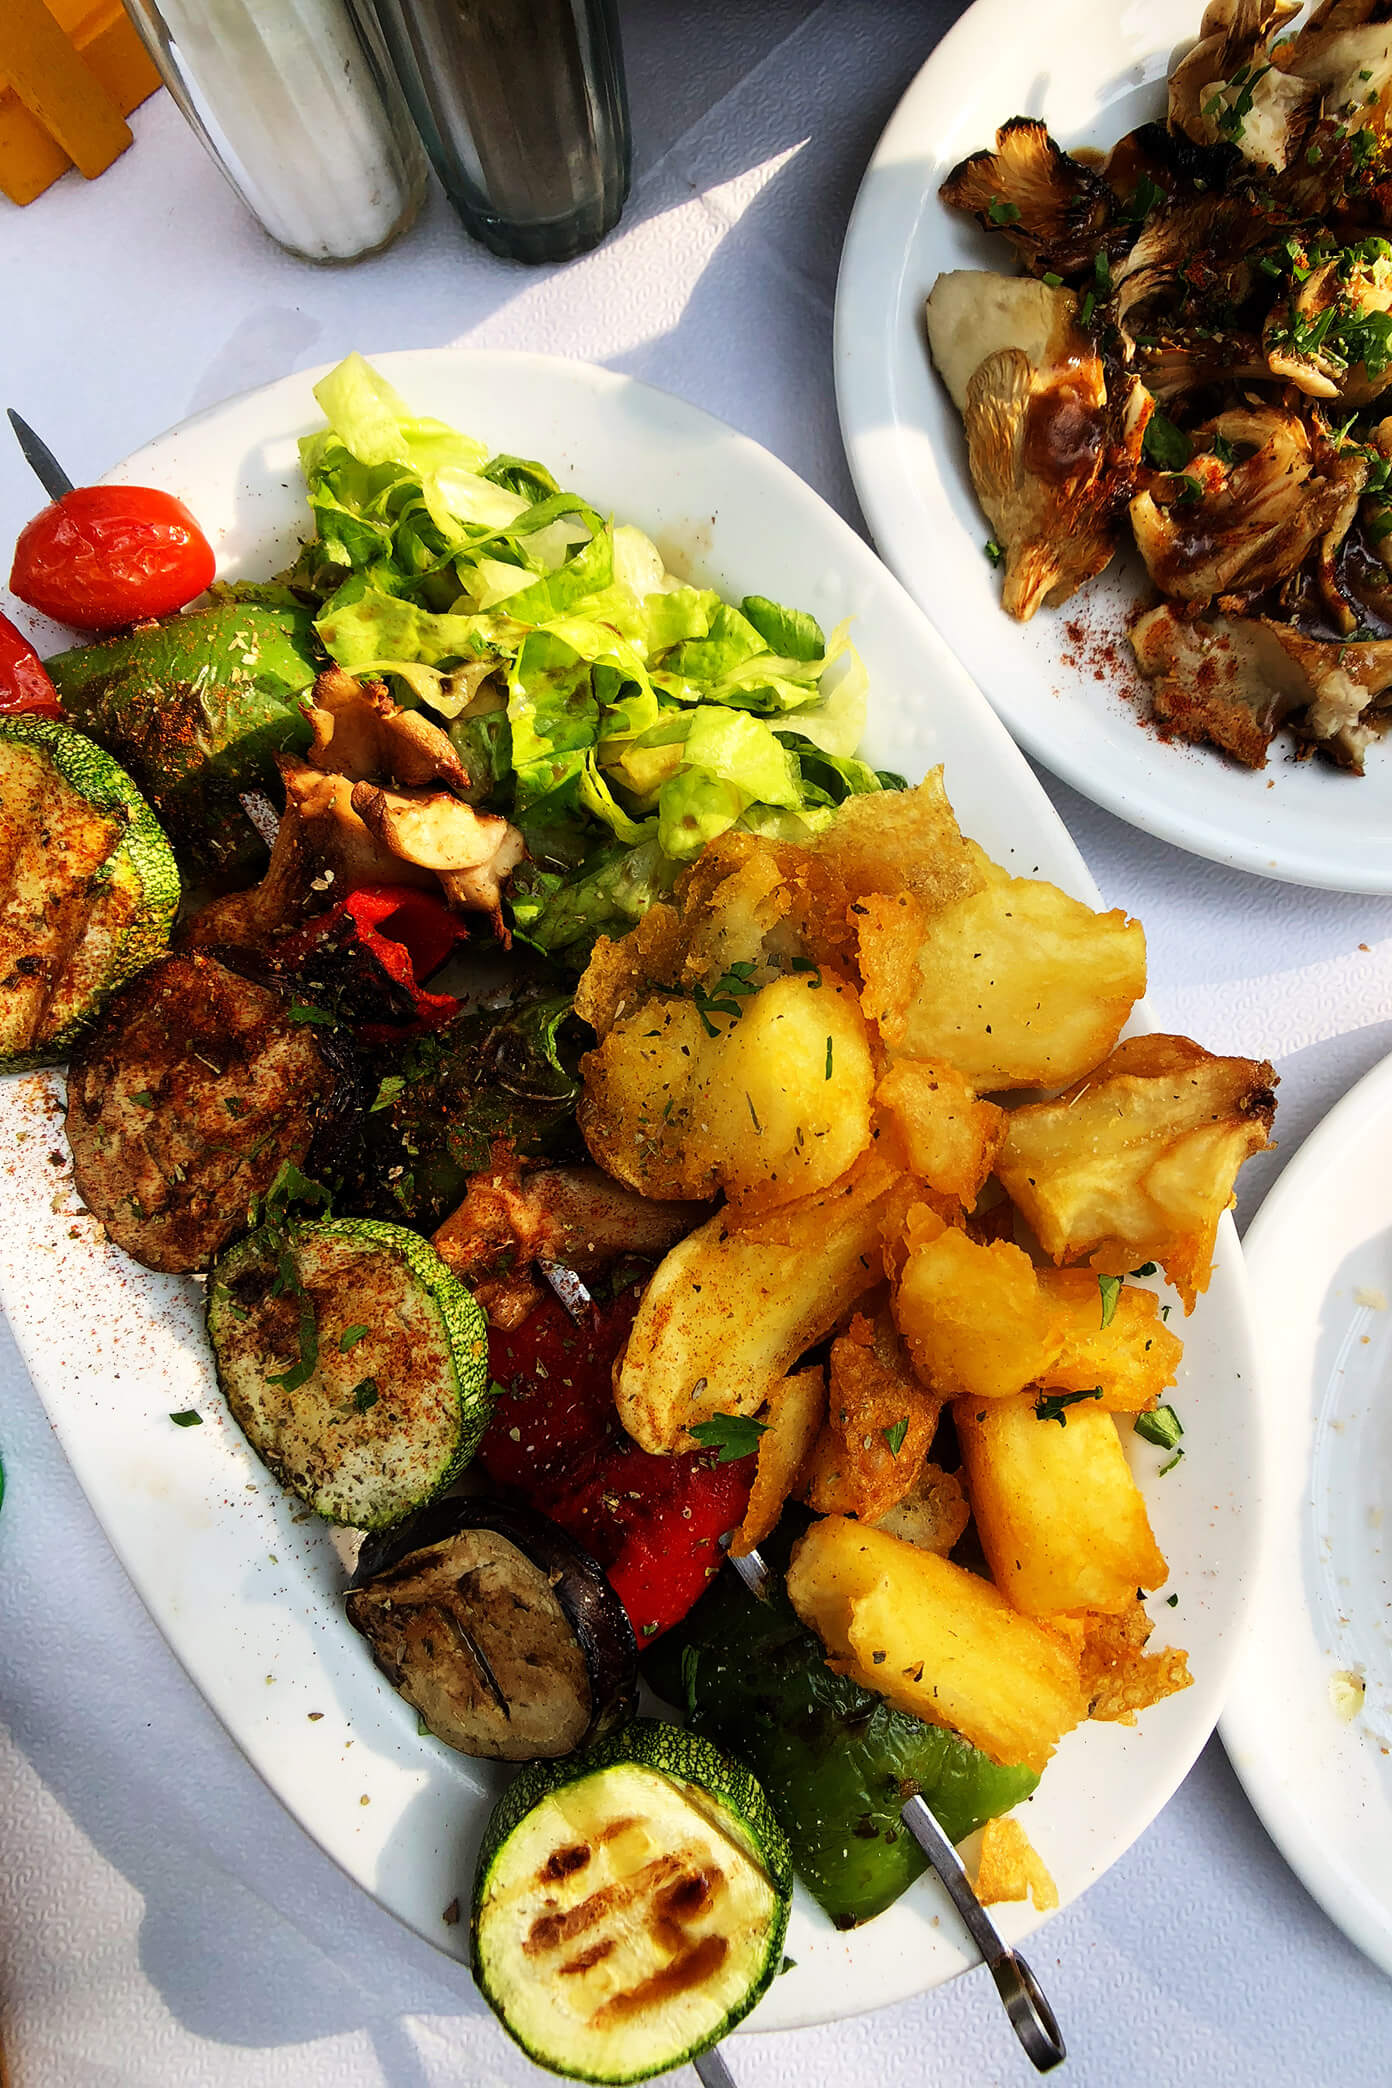 Vegan Souvlaki Vegetables at Melissa in Folegandros, Greece